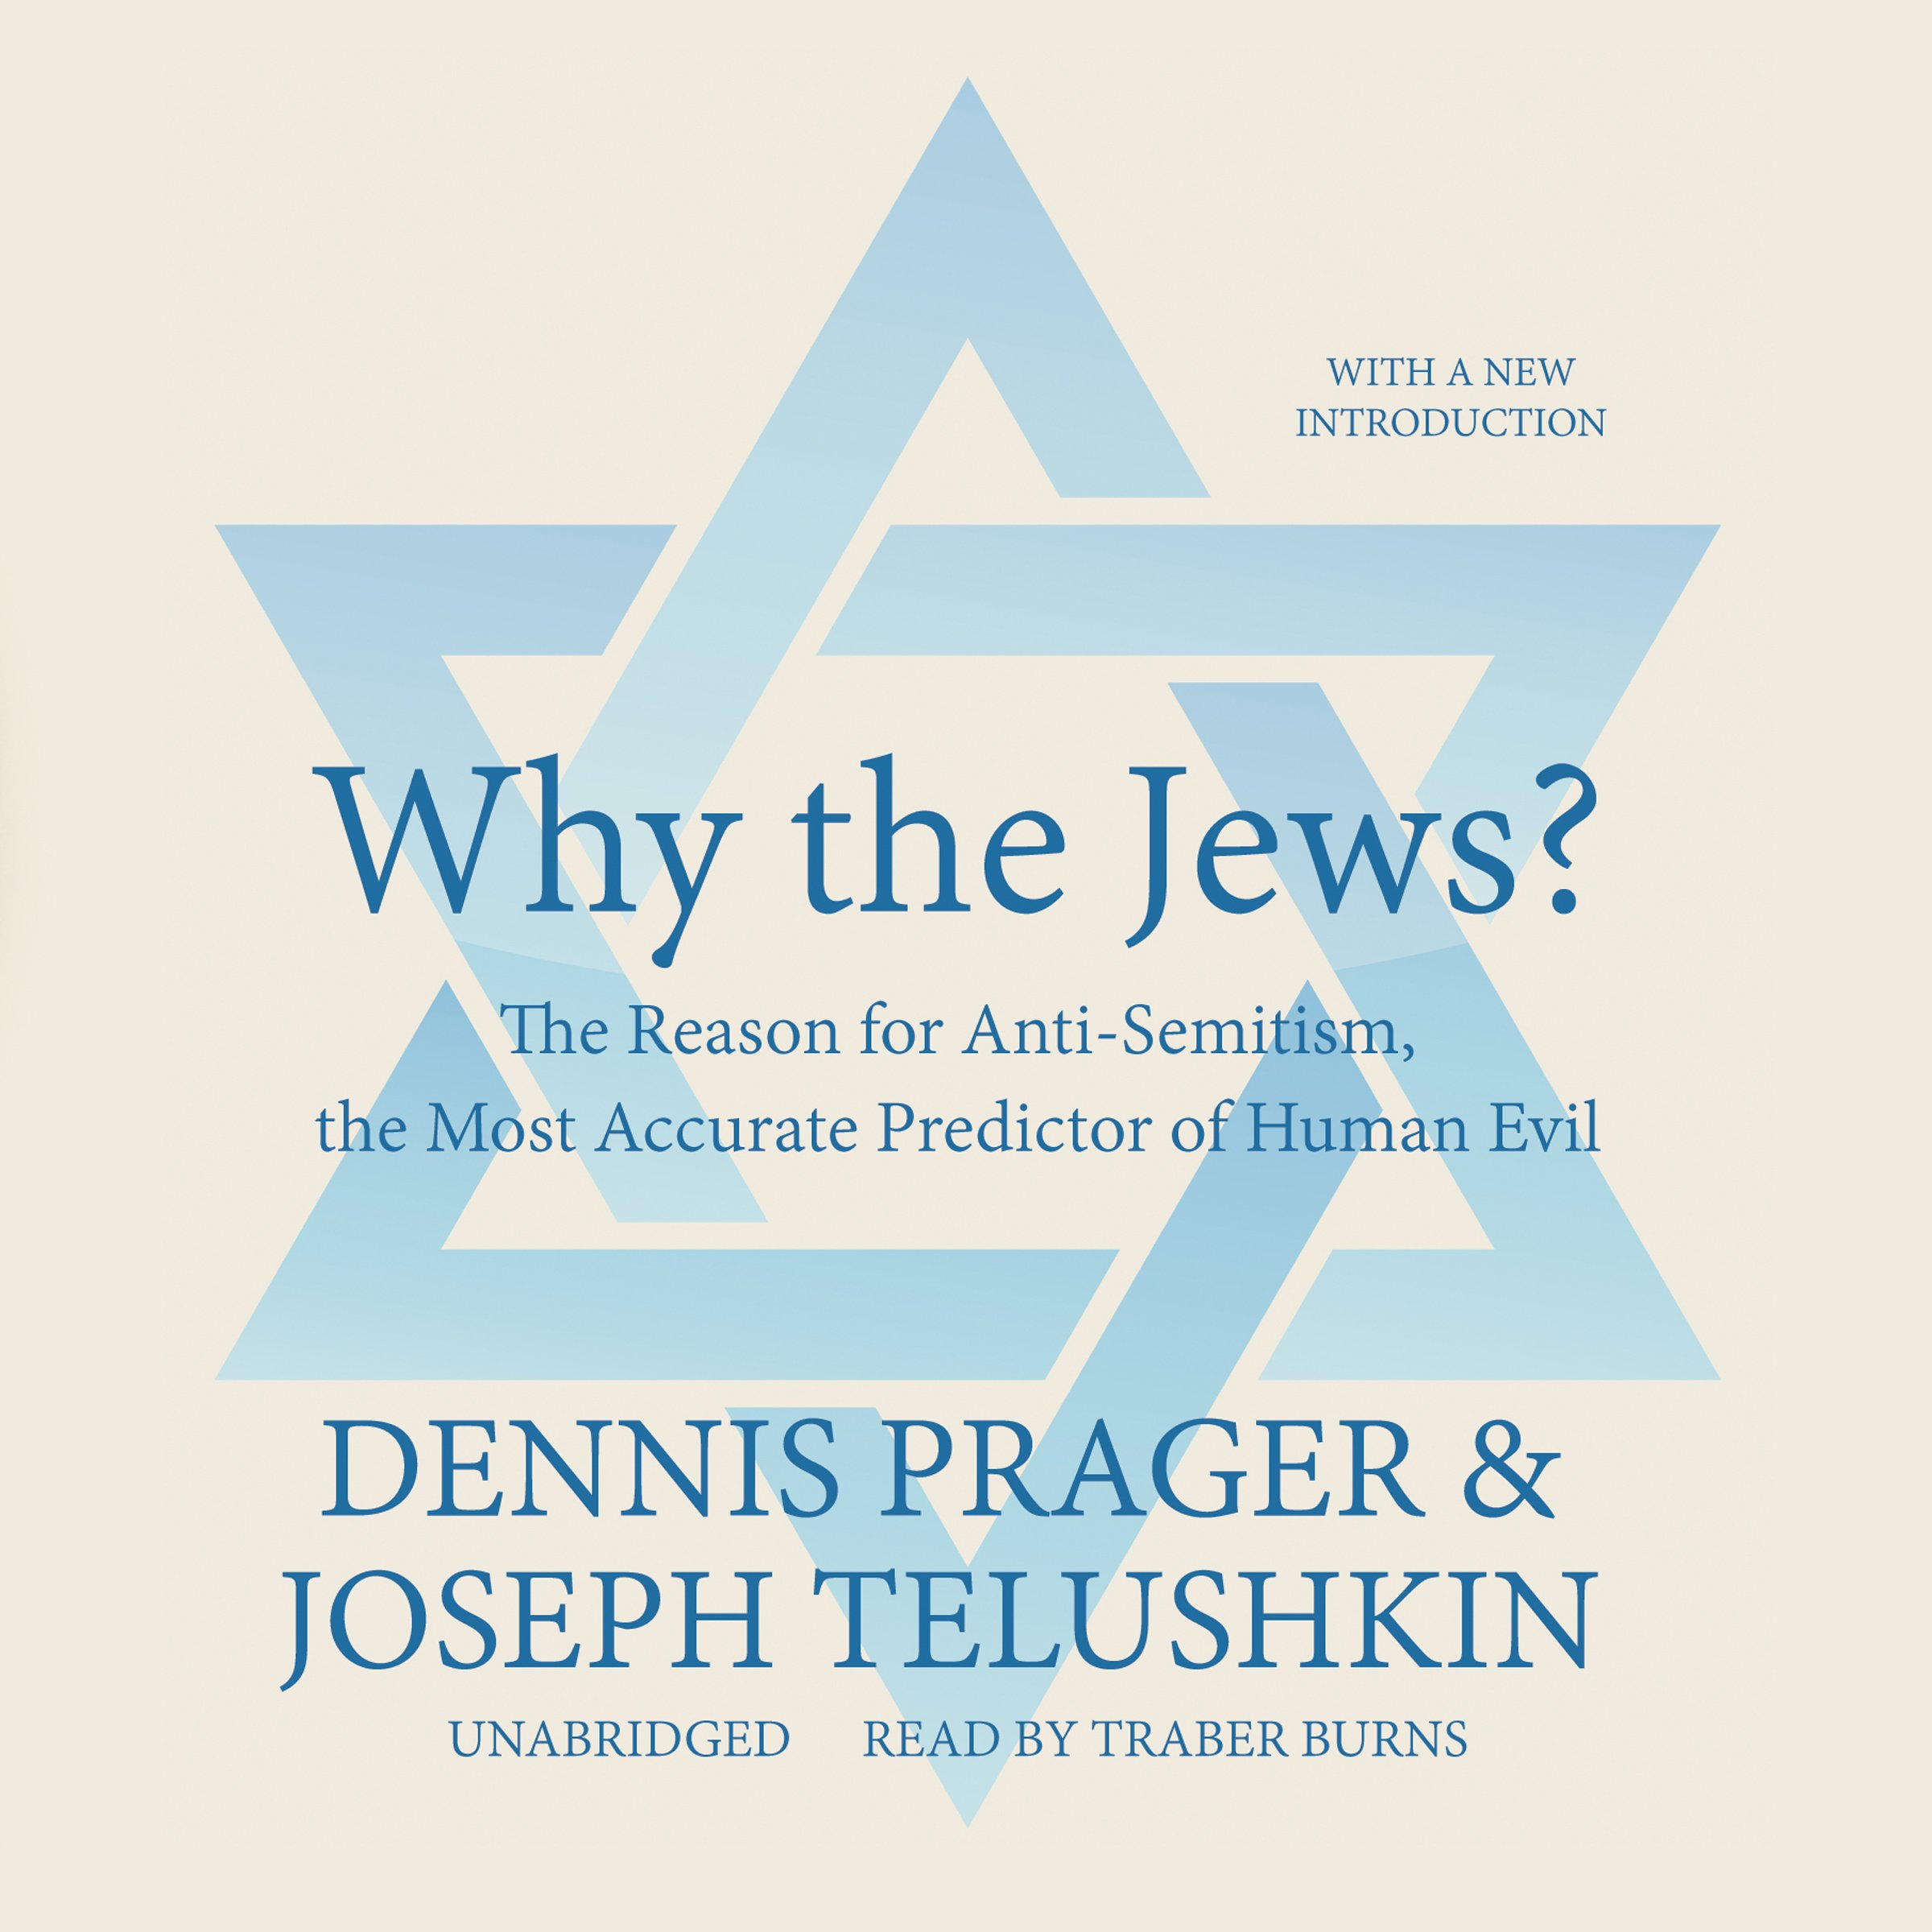 Why the Jews?: The Reason for Anti-Semitism, the Most Accurate Predictor of Human Evil